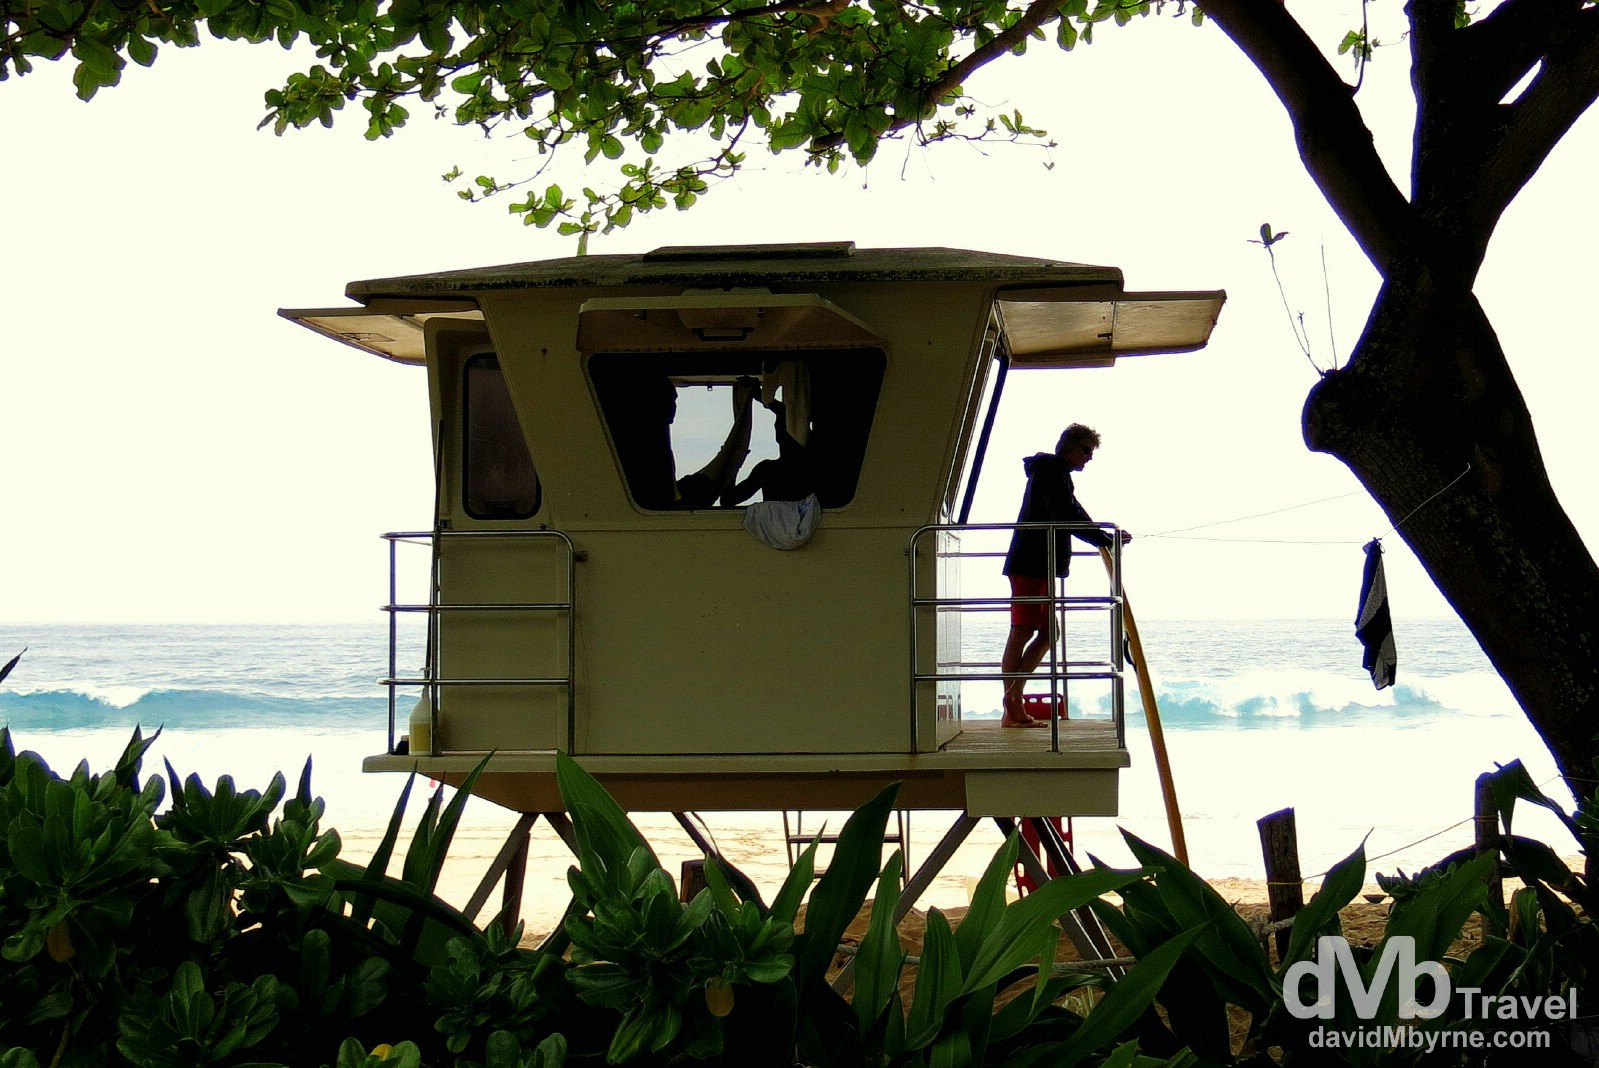 A lifeguard hut on the beach at Ehukai Beach Park, Pupukea, North Shore, O'ahu, Hawai'i. March 10th 2013.